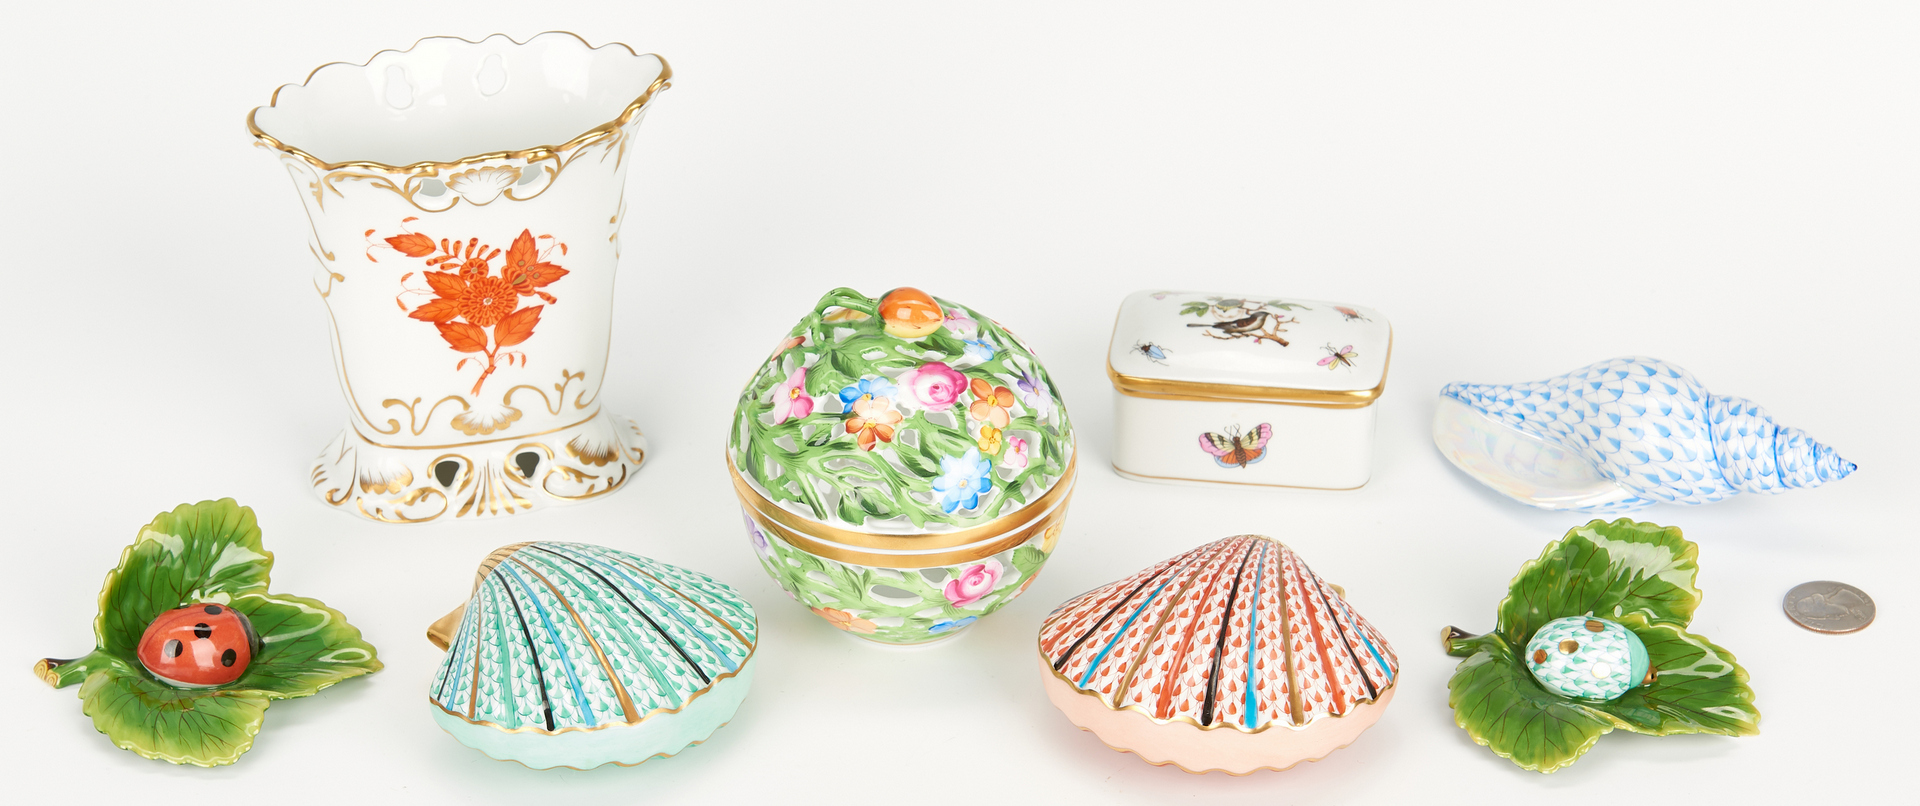 Lot 838: Group of 8 Herend Trinkets incl. Shells